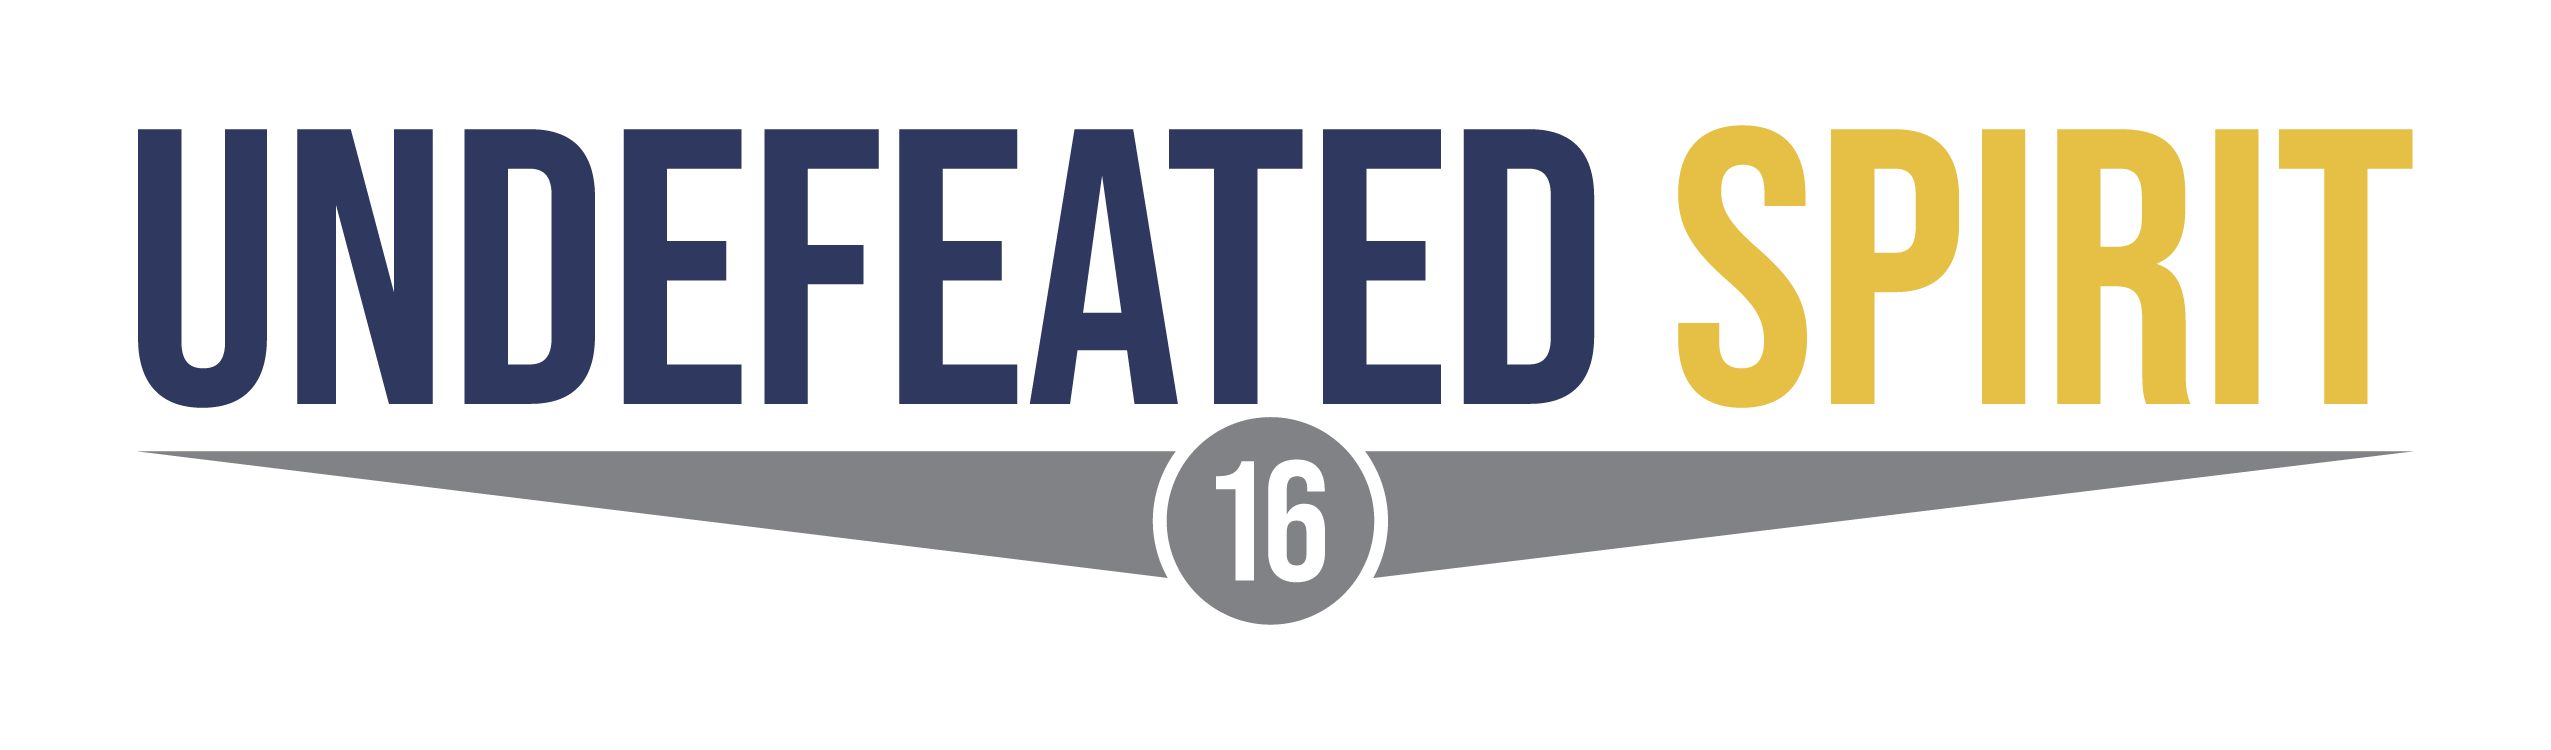 Undefeated Spirit Logo